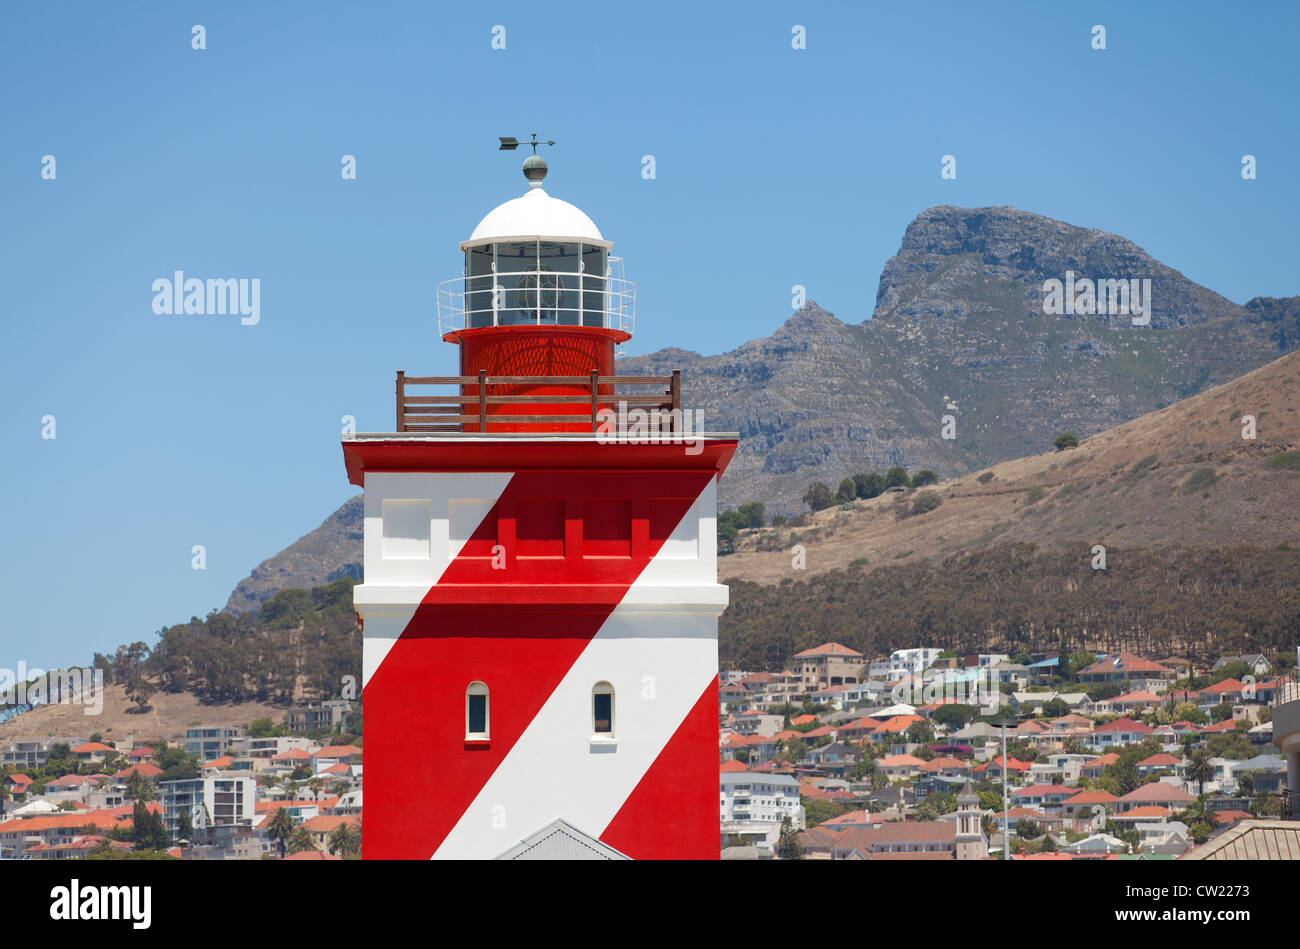 Capetown southafrica Stock Photo